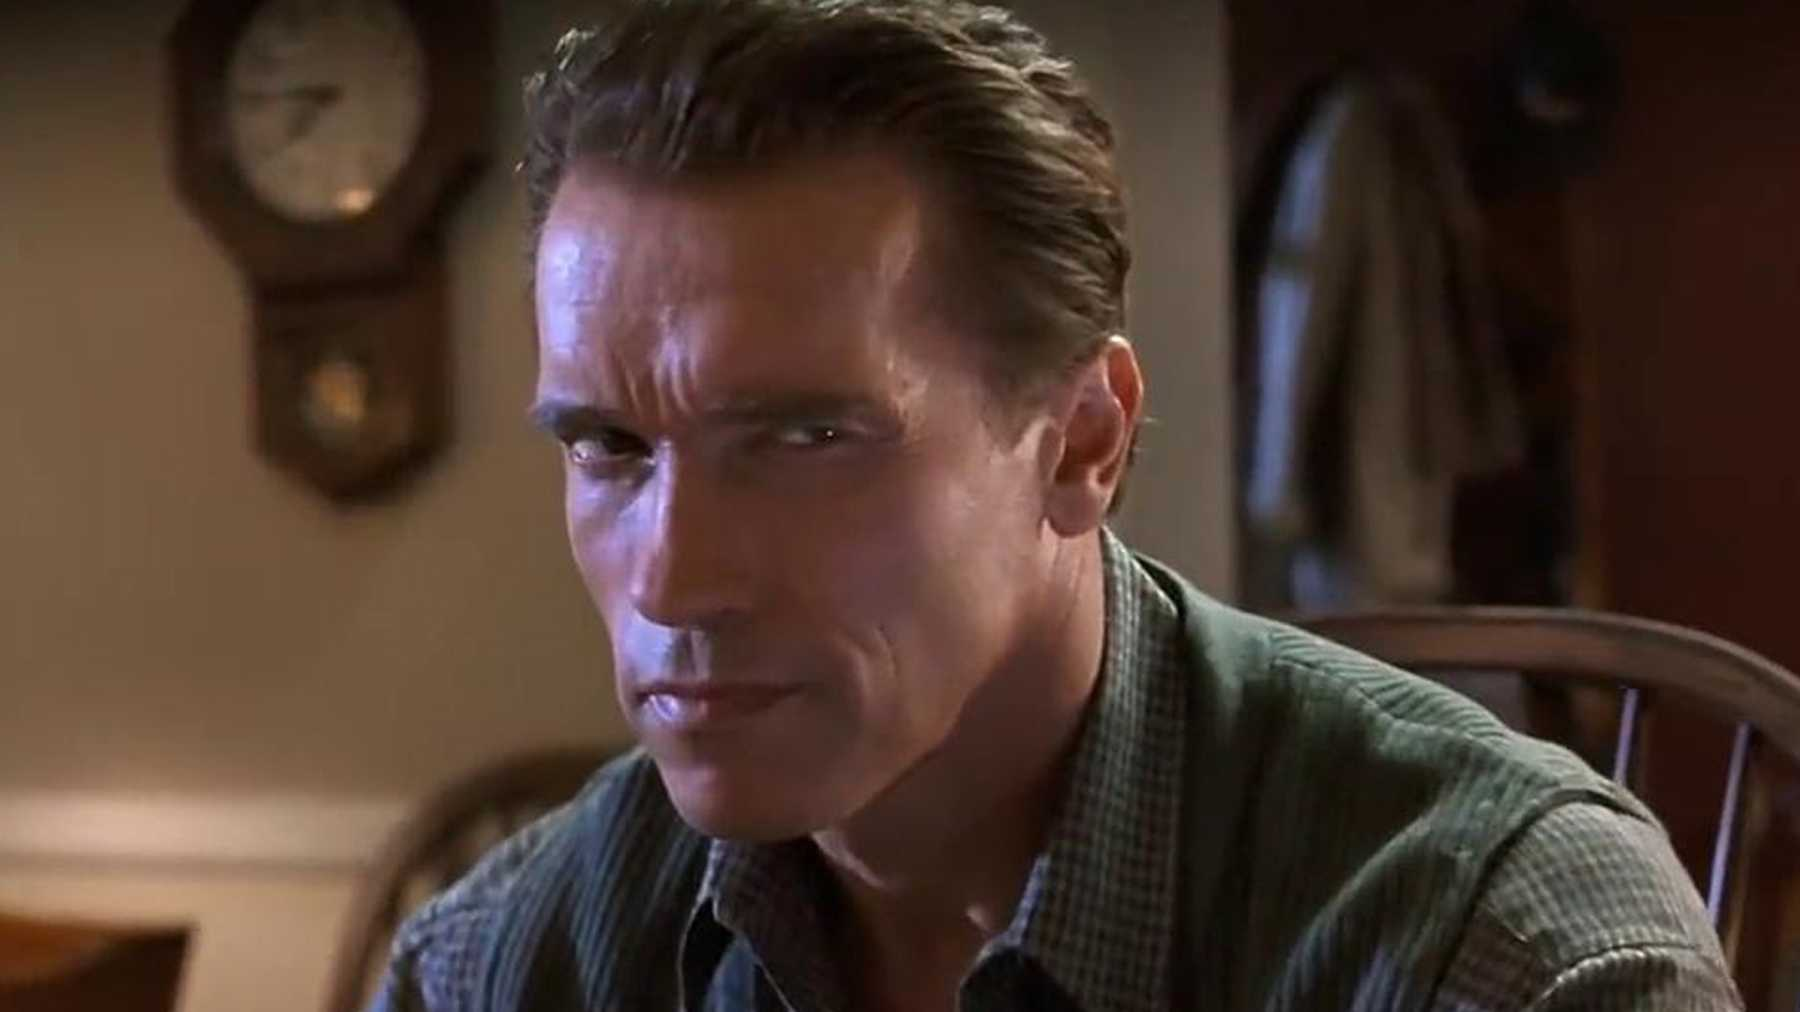 True Lies Blu-Ray Could Be Done By End Of 2018, Says James Cameron